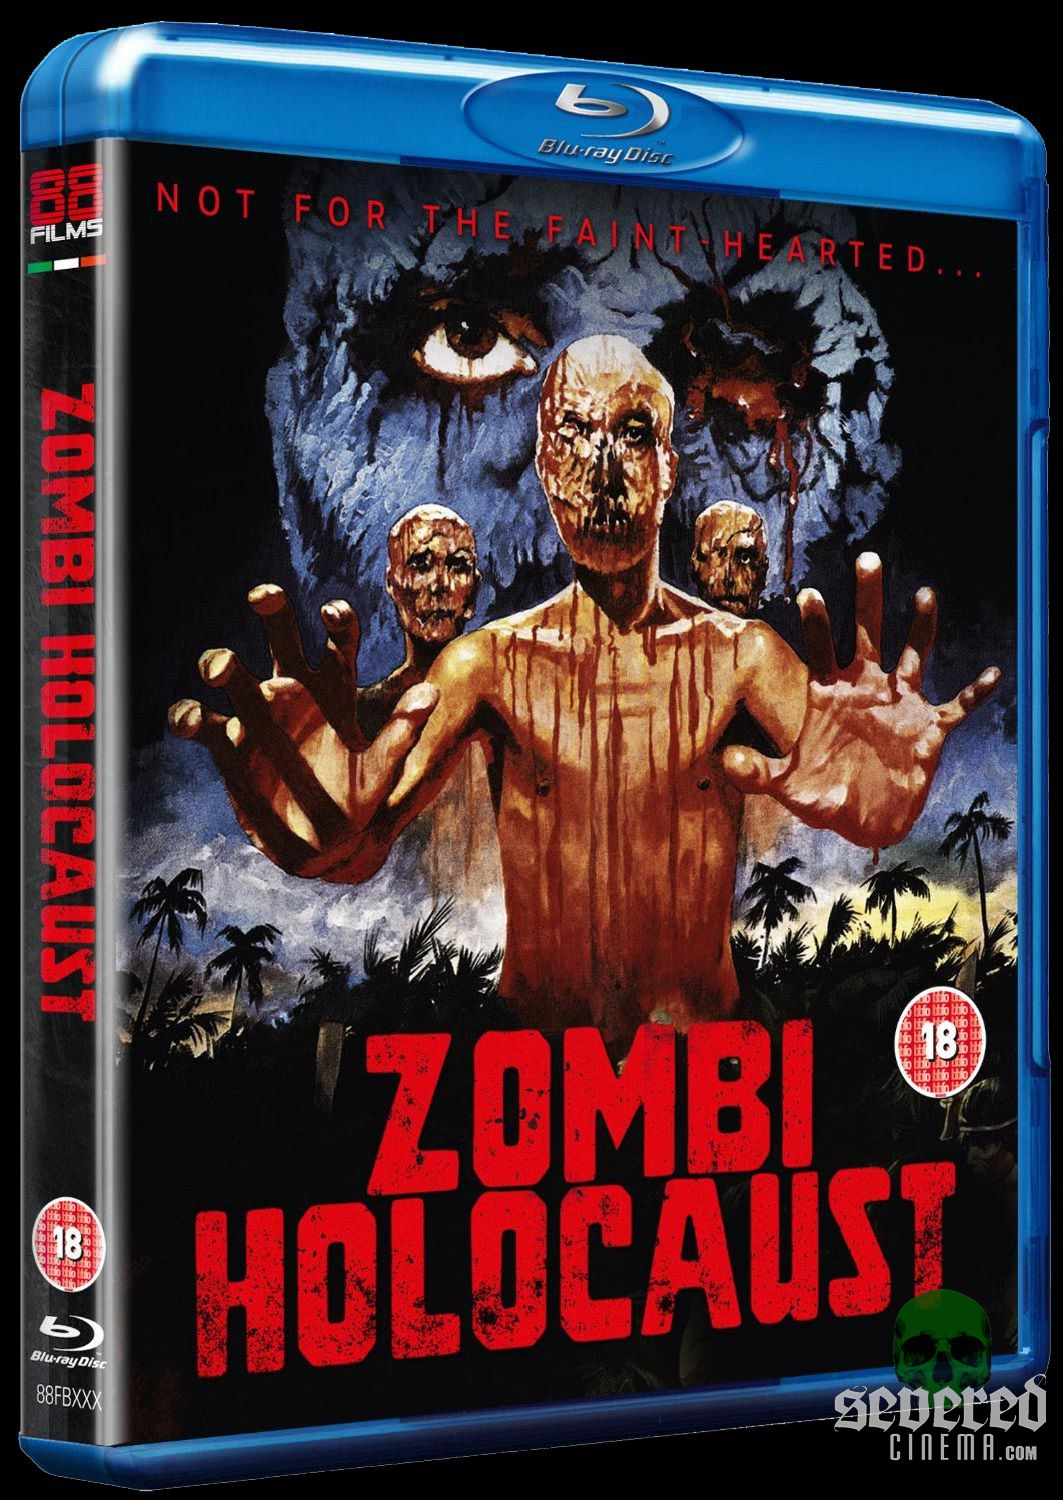 Zombie Holocaust on Blu-ray from 88 Films on Severed Cinema